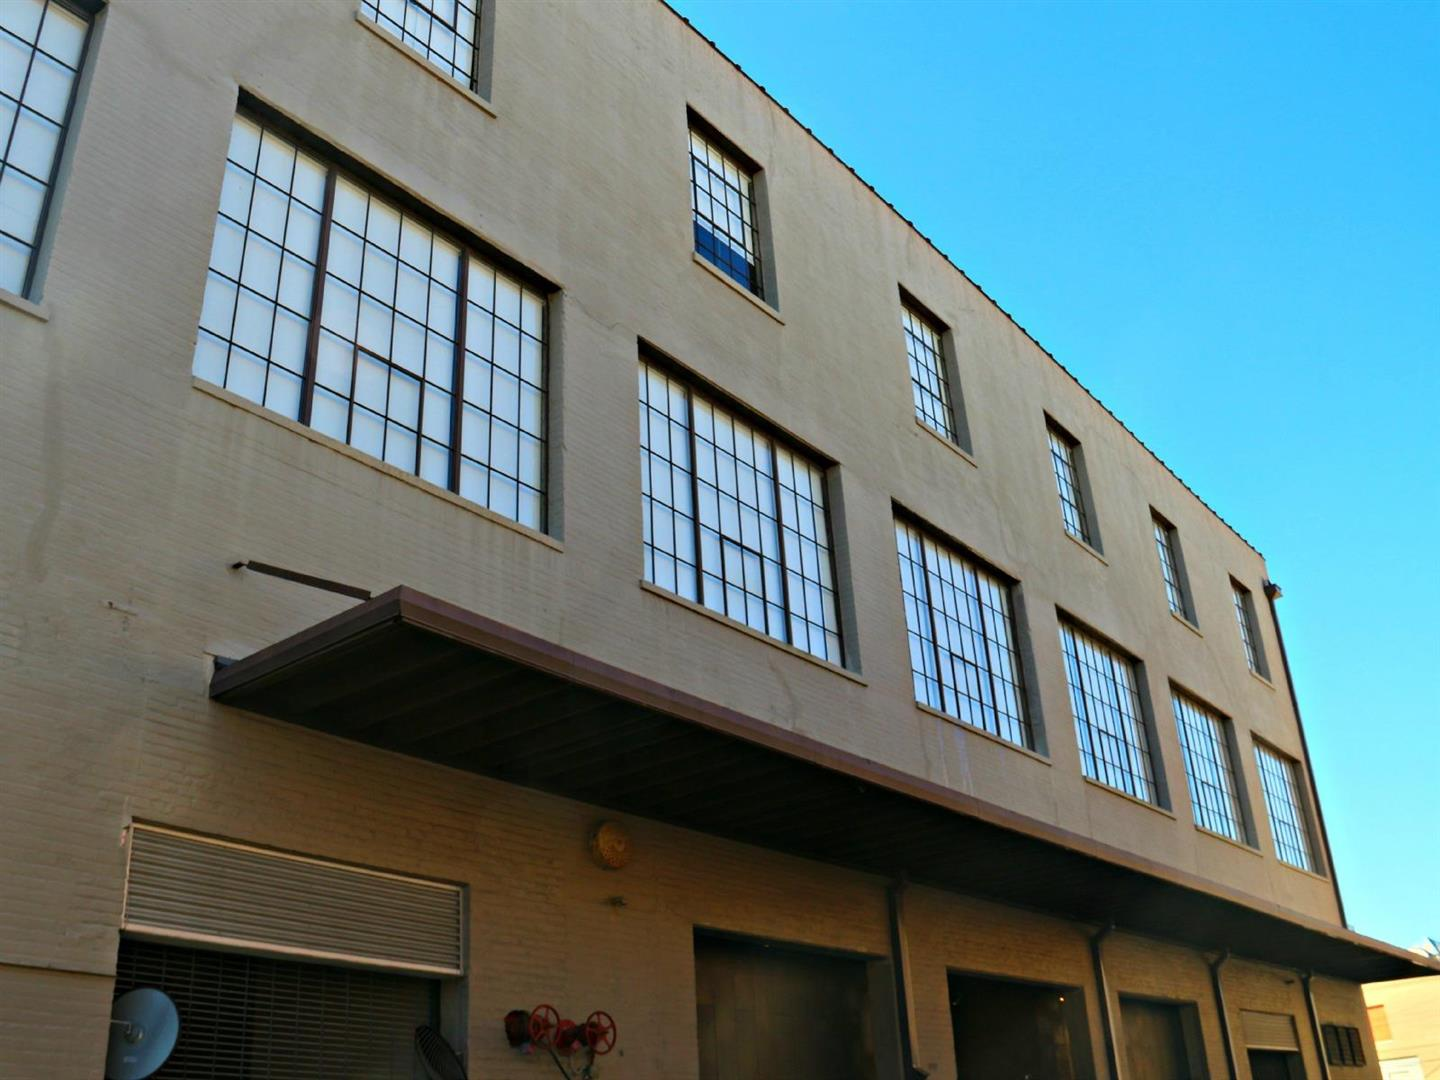 610JohnChurchill,LiensfieldLofts.jpg